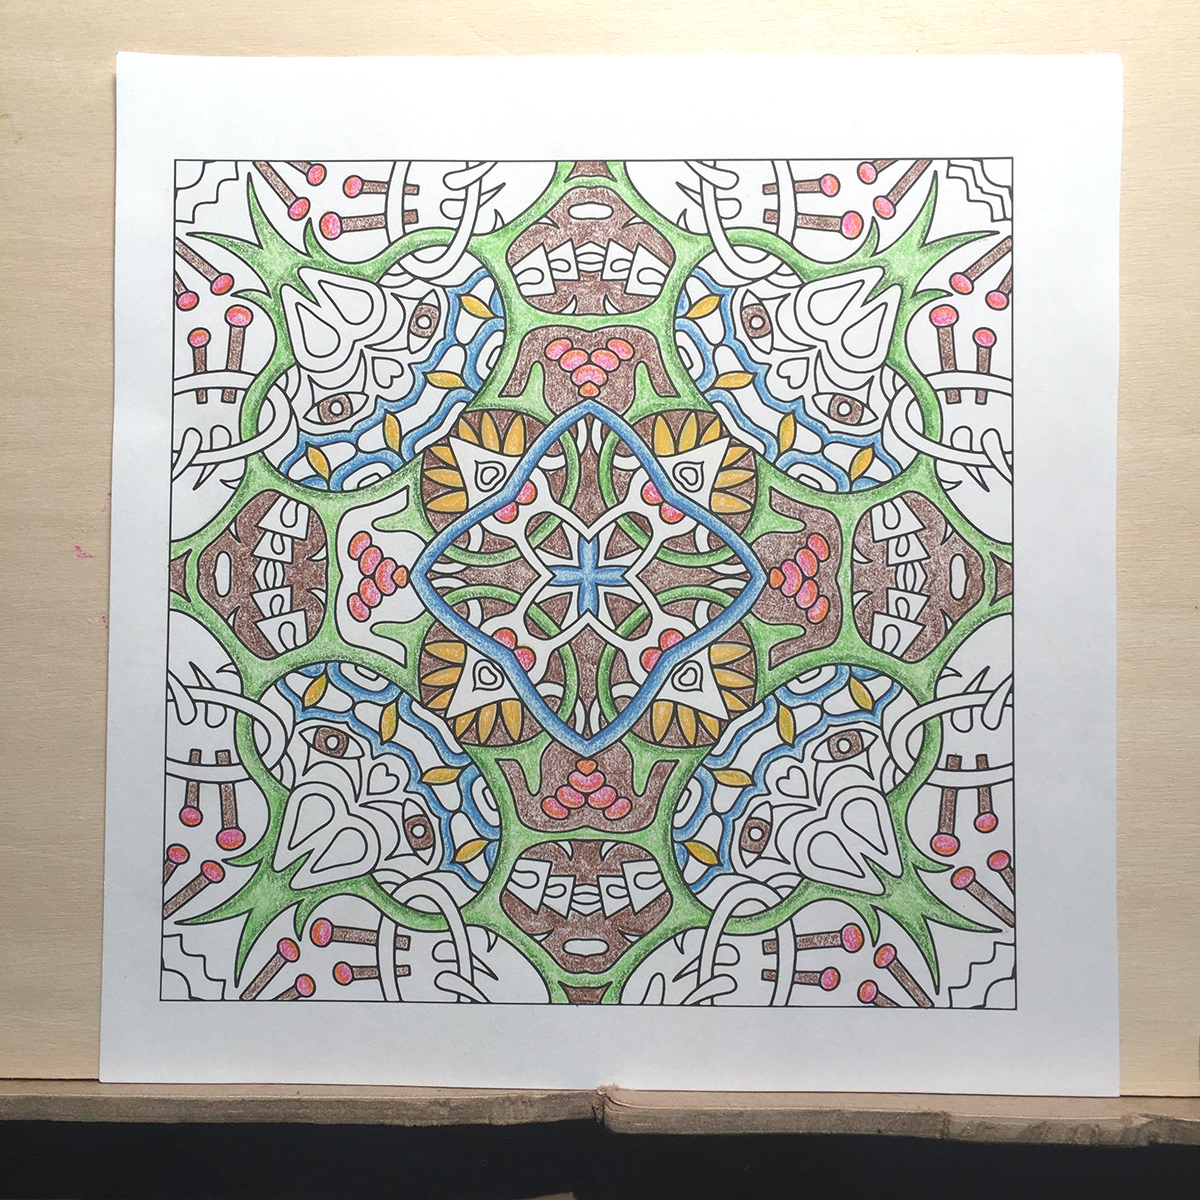 Meditative Mandalas - Volume 1